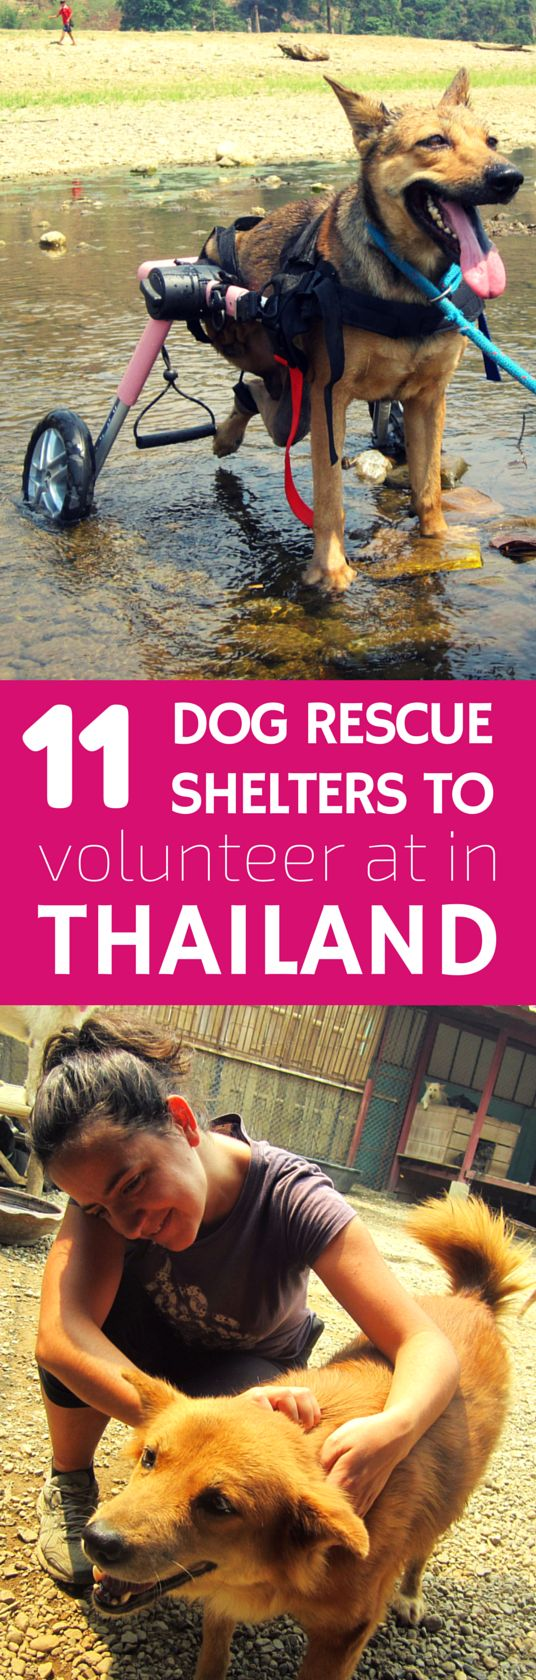 Want to volunteer in Thailand? Then help rescue dogs from the street and meat trade by volunteering at one of 11 volunteer-friendly dog shelters in Thailand